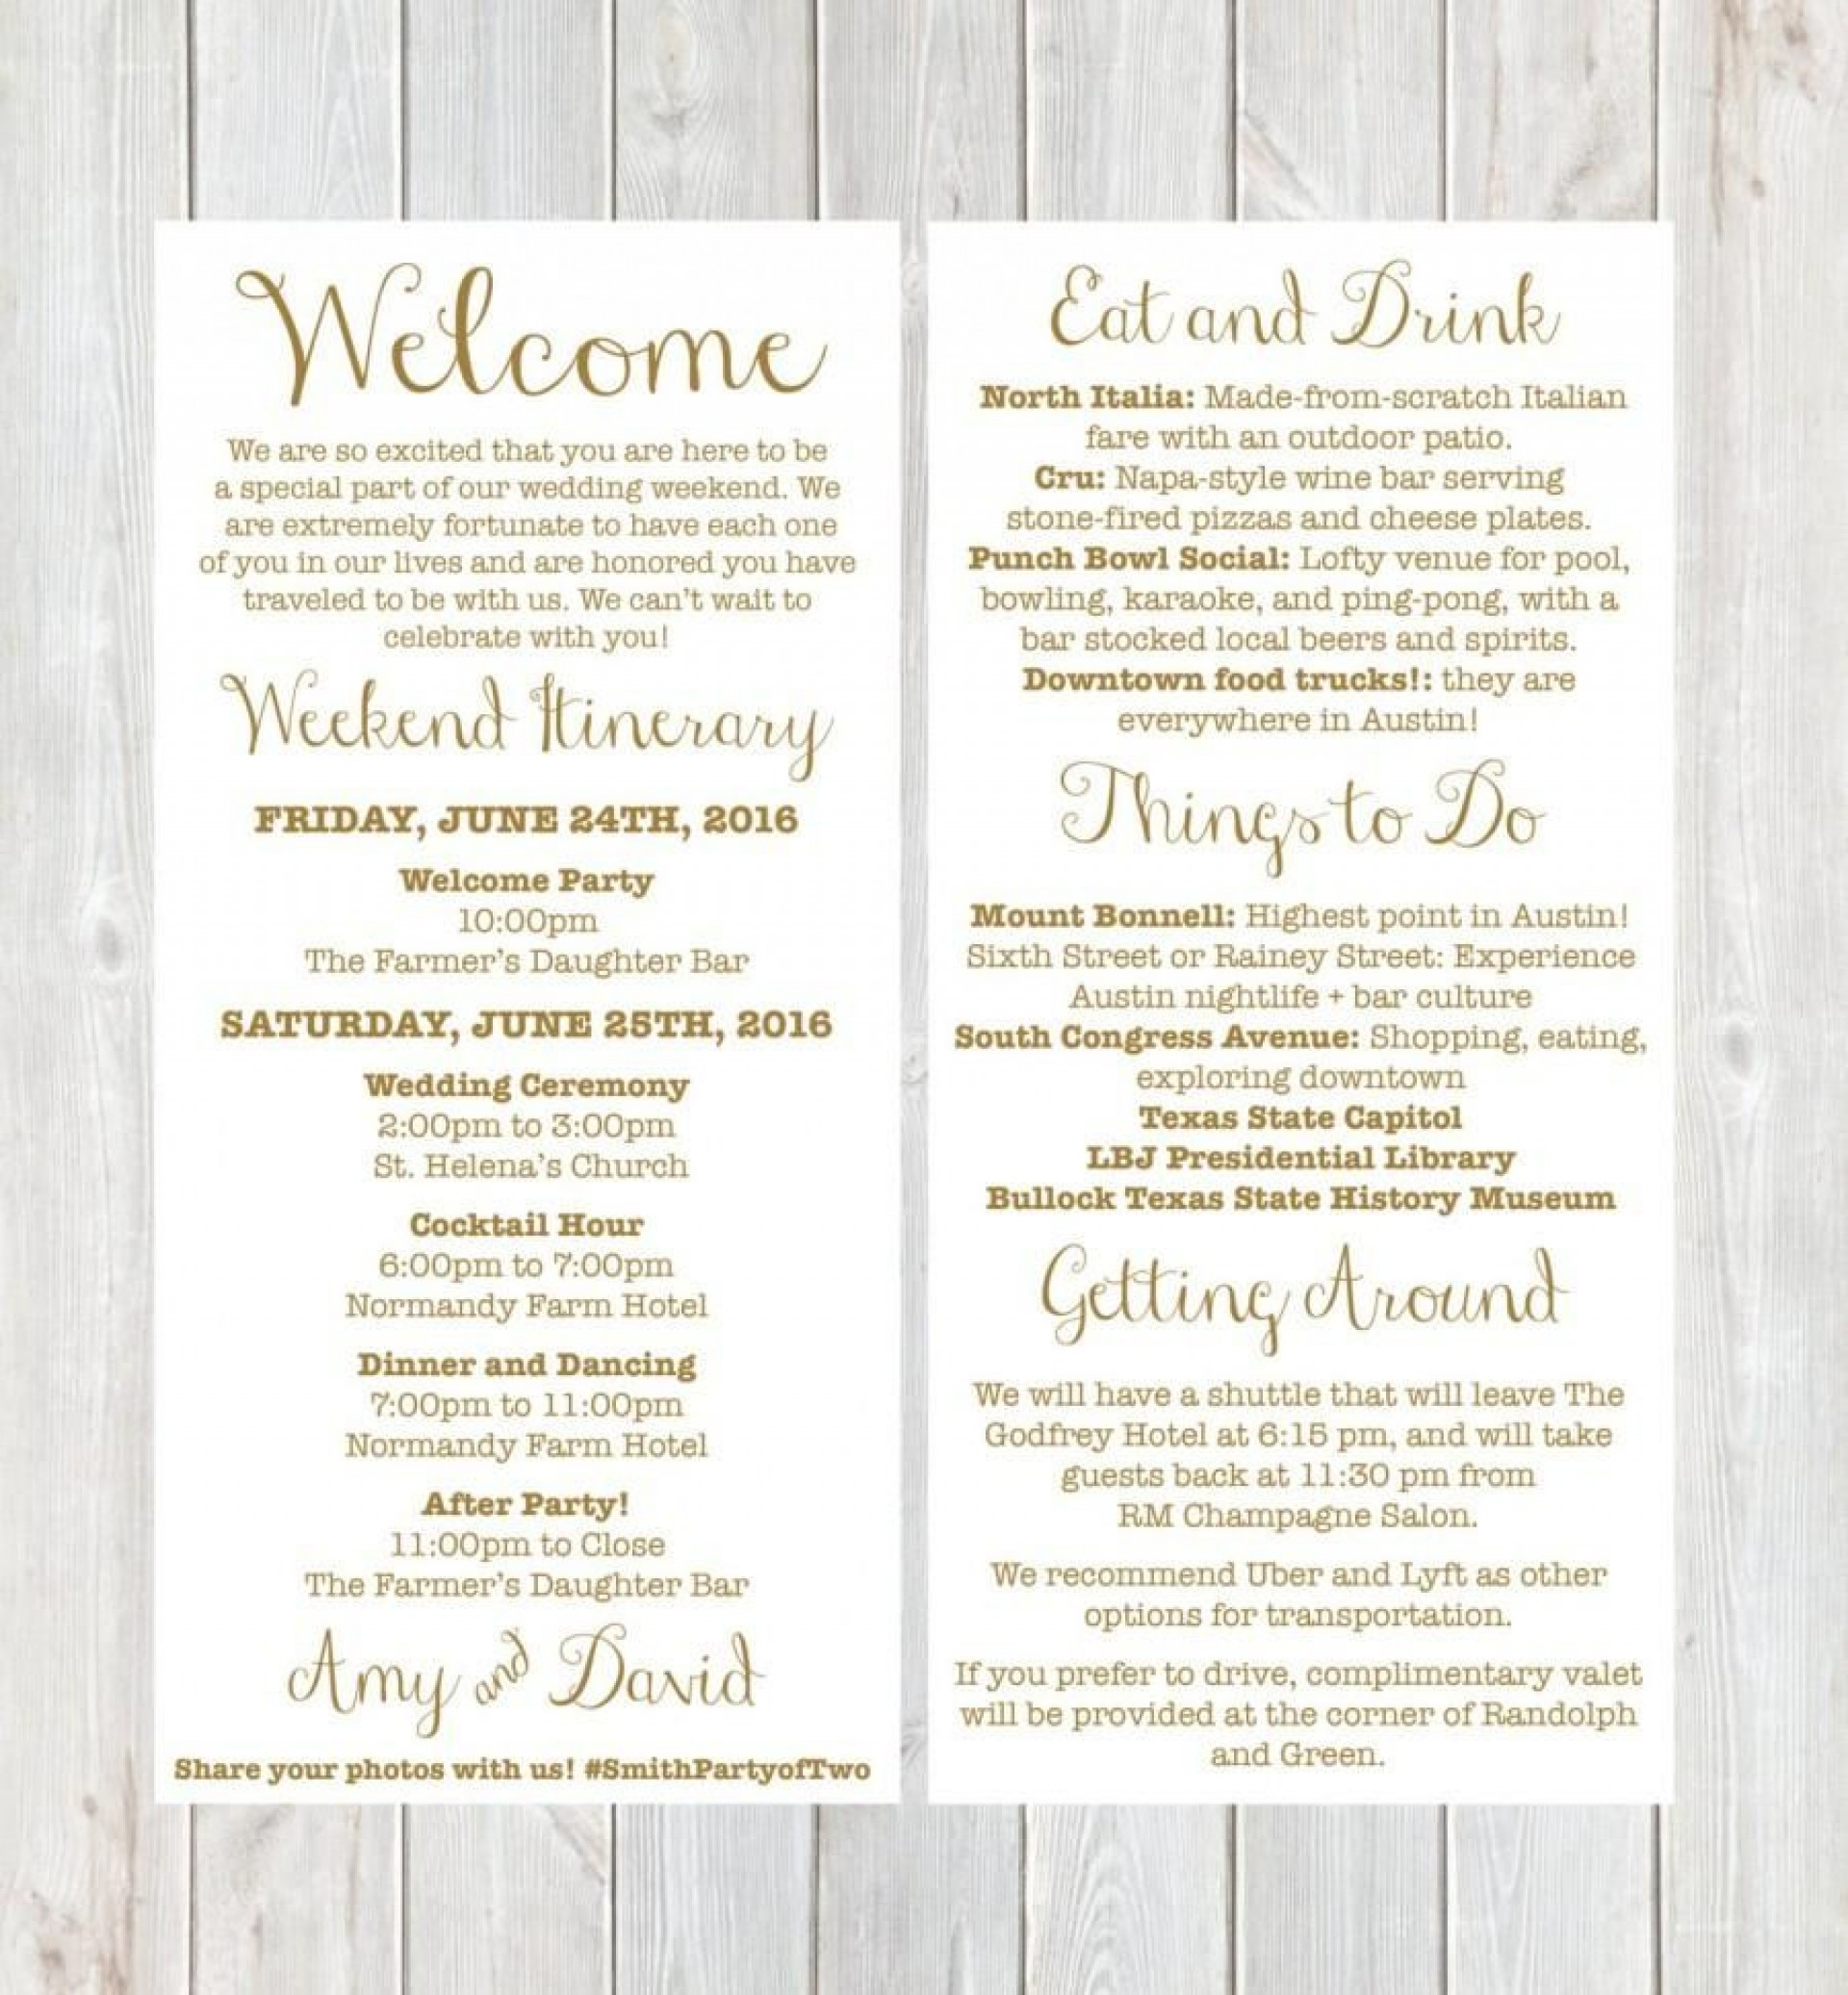 008 Singular Wedding Guest Welcome Letter Template Photo 1920